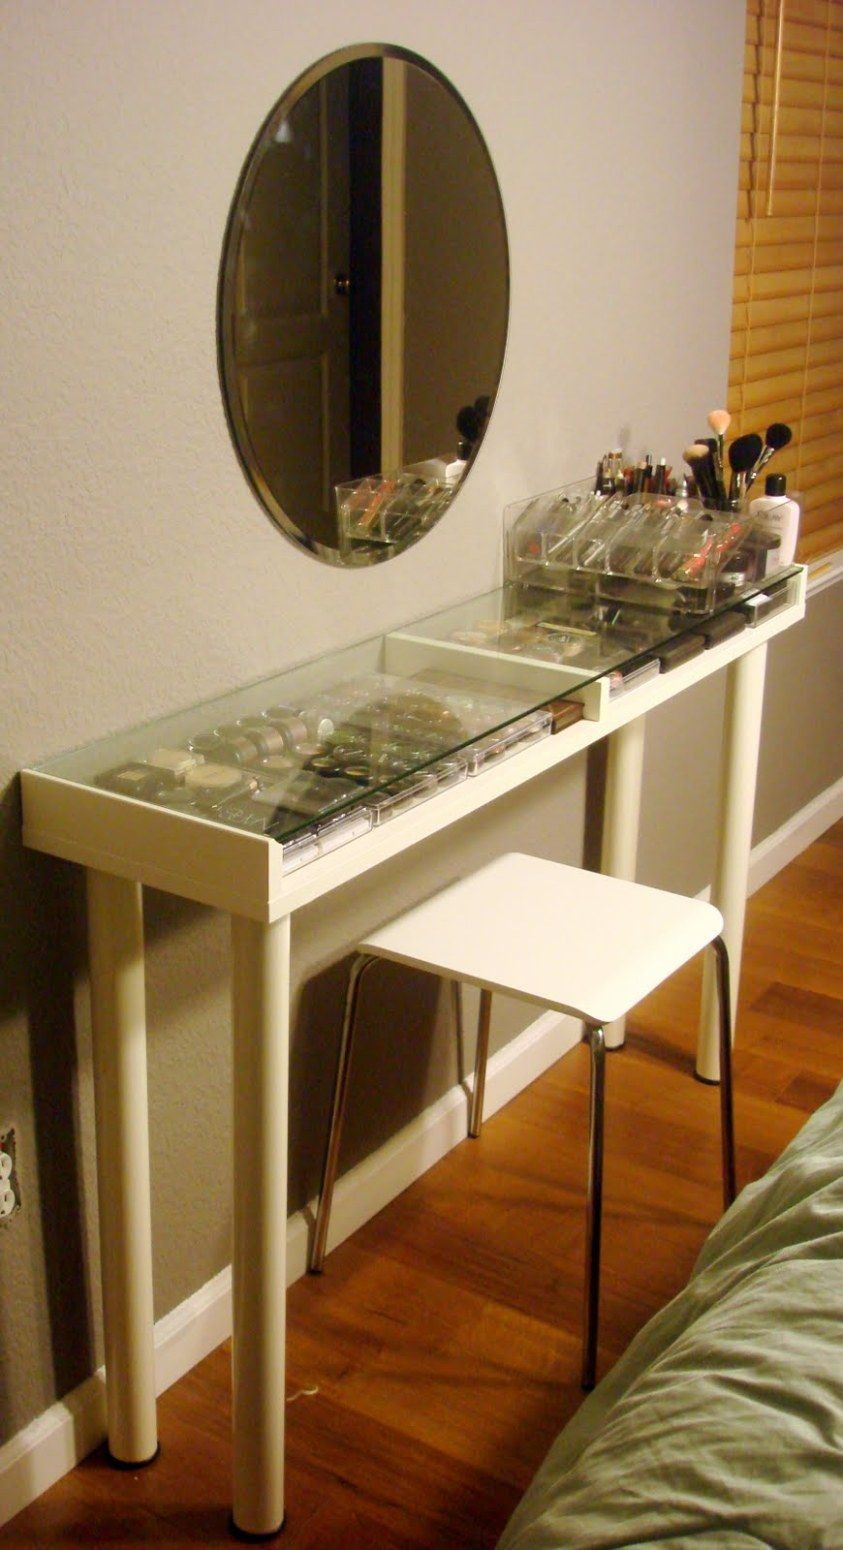 DIY Ikea Makeup Vanity | Diy makeup vanity, Makeup vanities and Diy ...